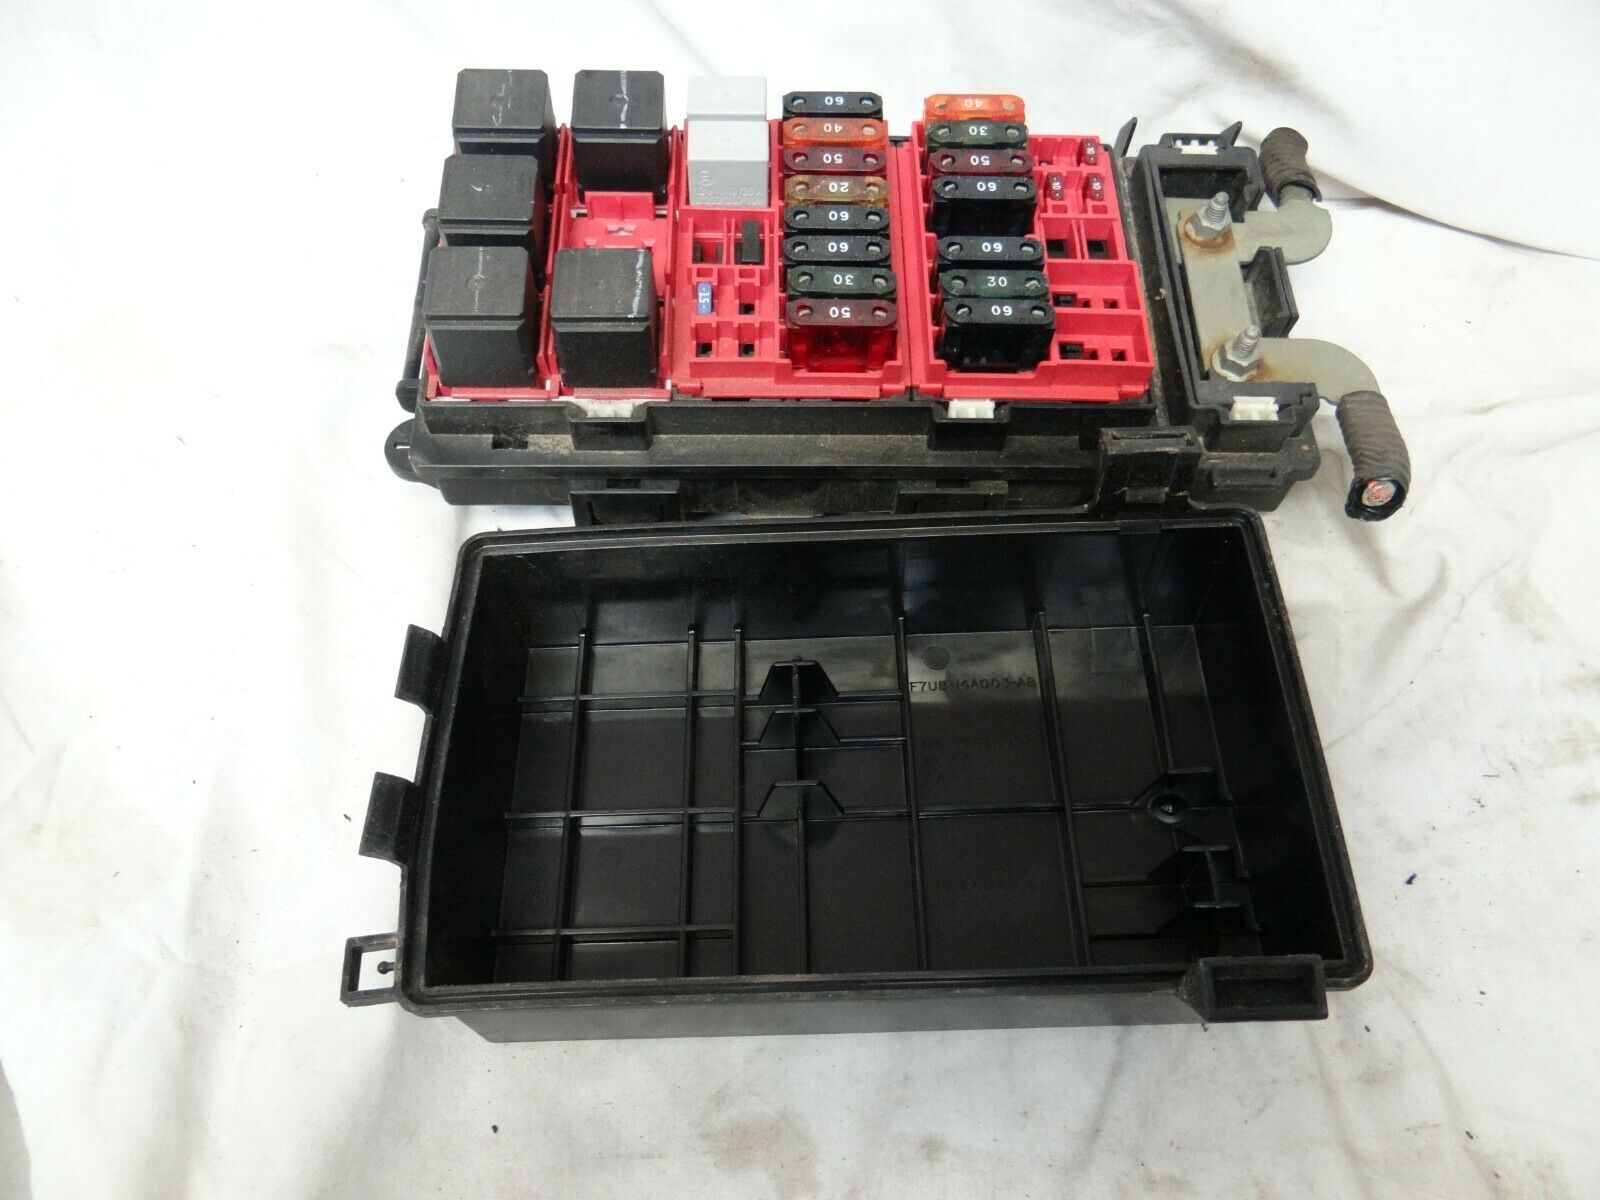 hight resolution of ford e150 engine fuse box relay junction block 98 99 00 01 1998 1999 2000 2001 for sale online